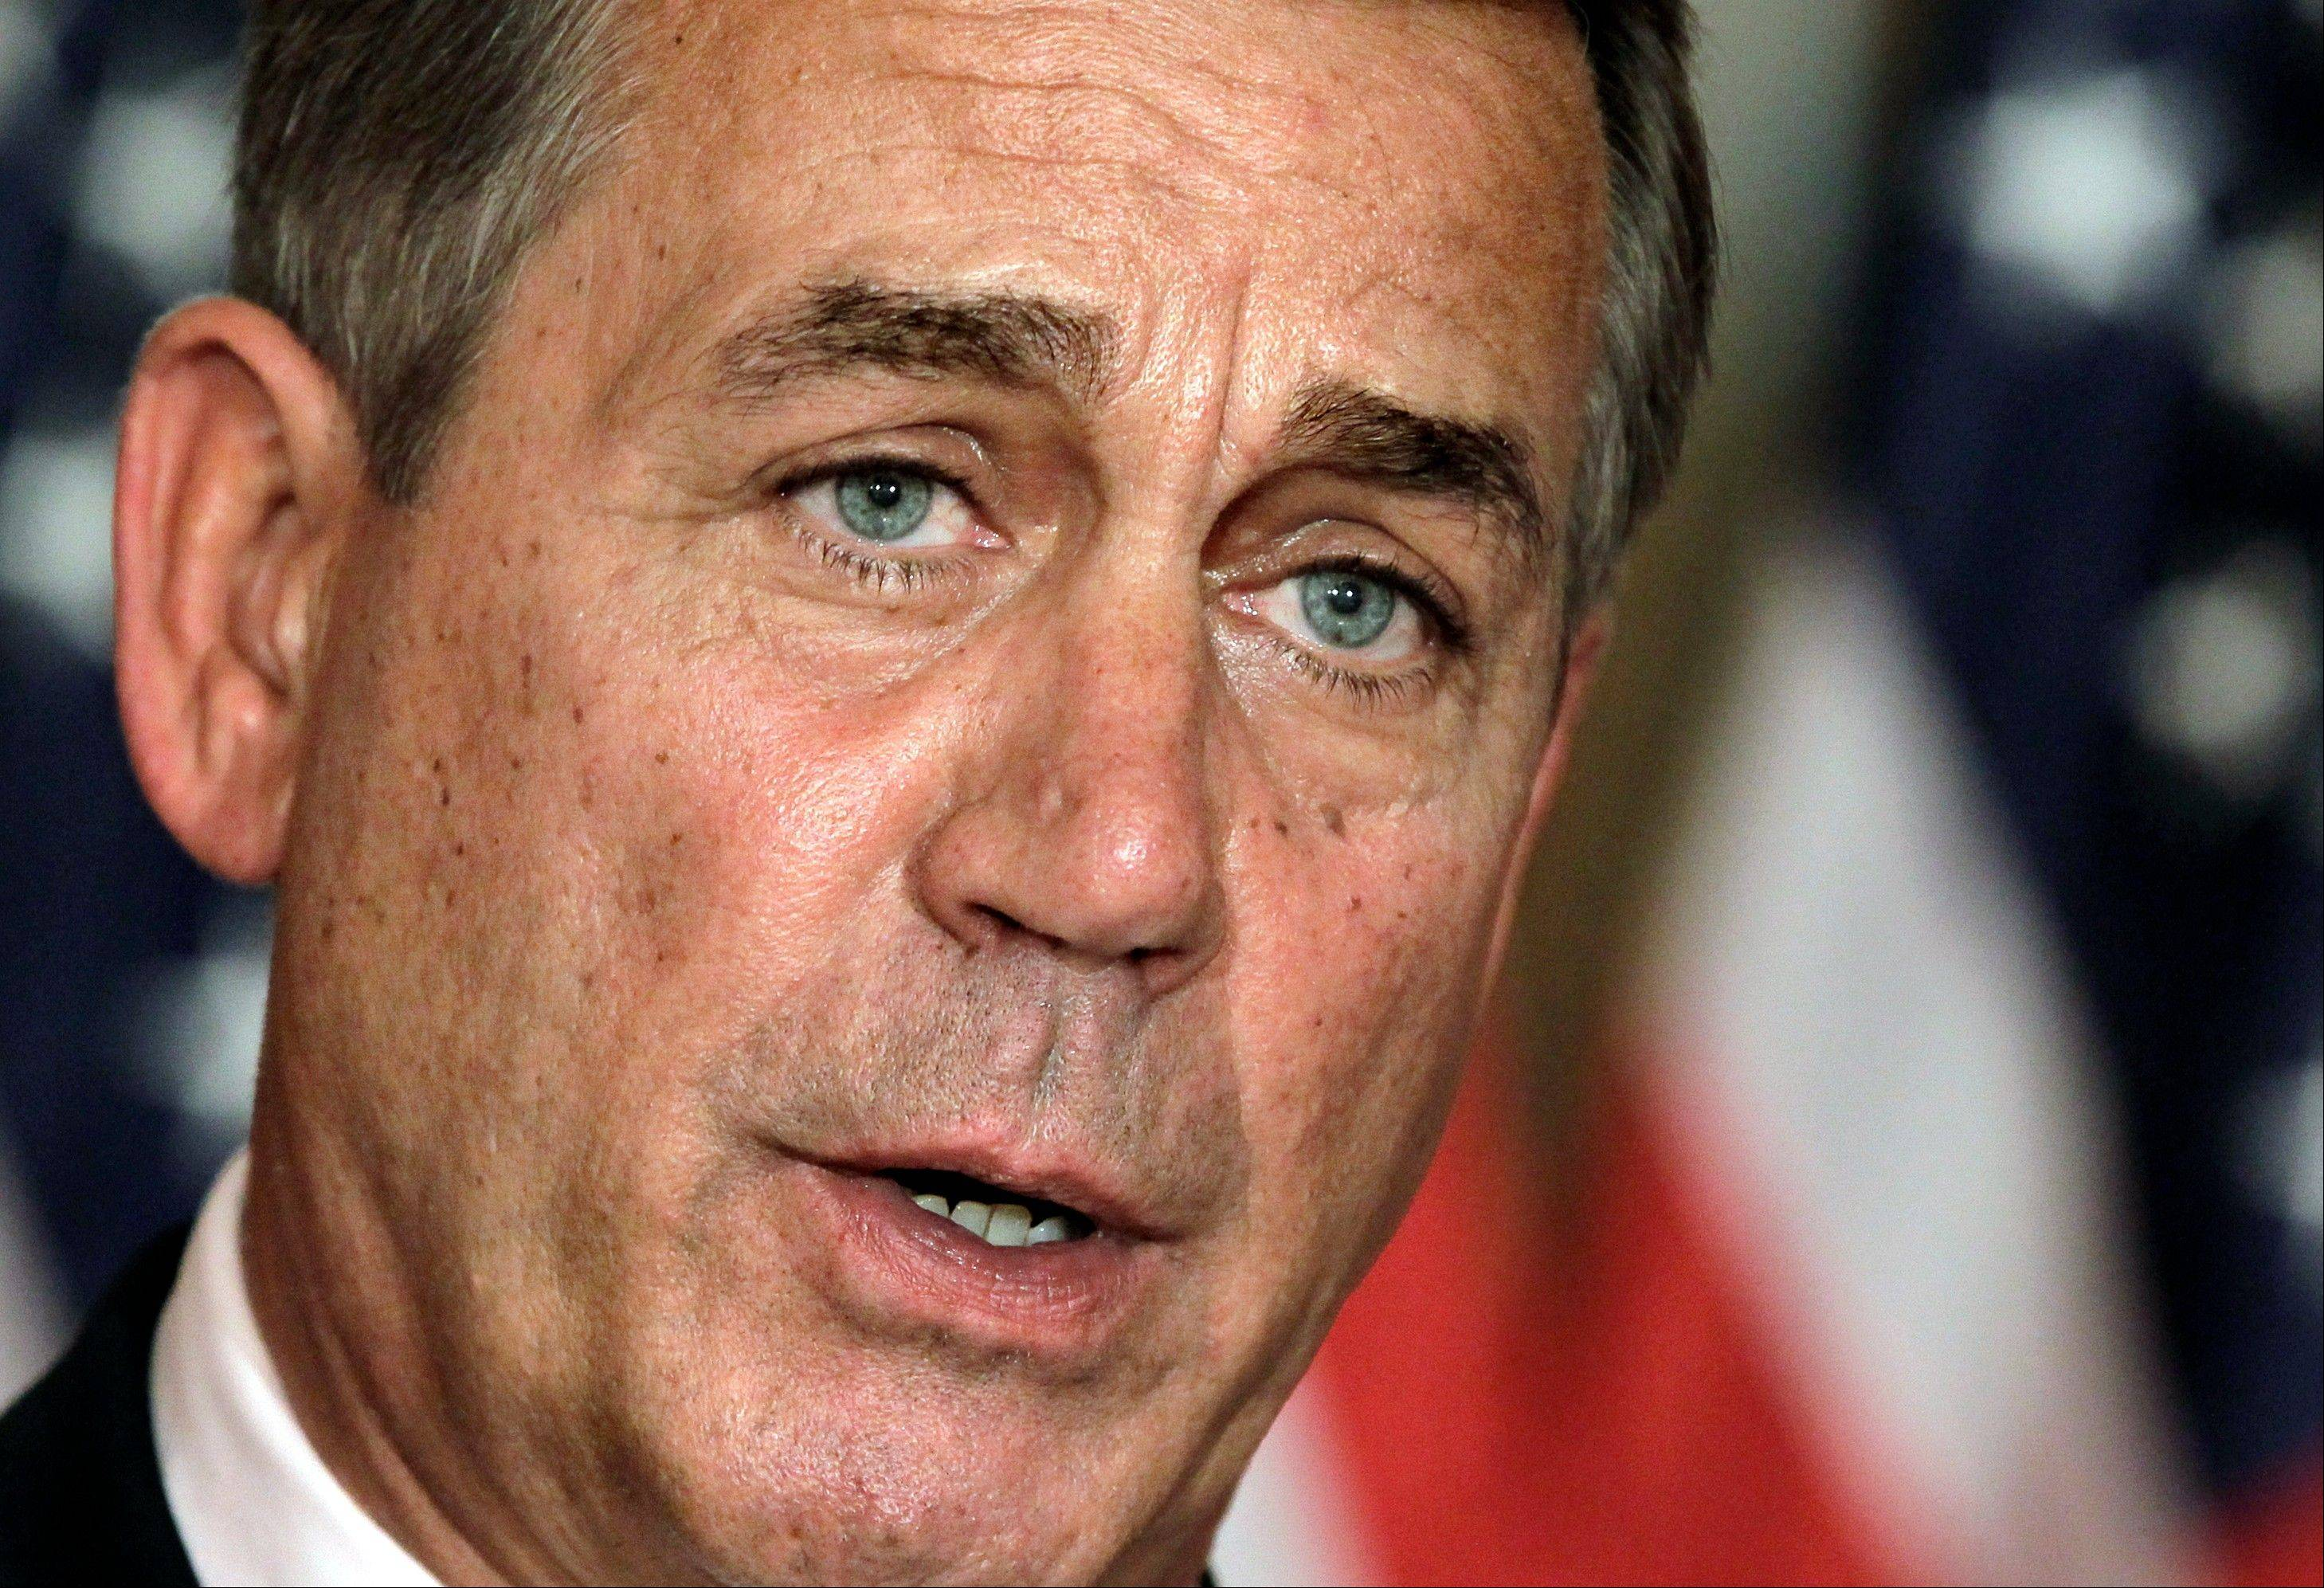 Speaker John Boehner scrambled Wednesday to rally House Republicans behind a plan to extend tax cuts on income up to $1 million, defying President Barack Obama�s veto threat and setting up a showdown that could send Washington over the year-end �fiscal cliff.�